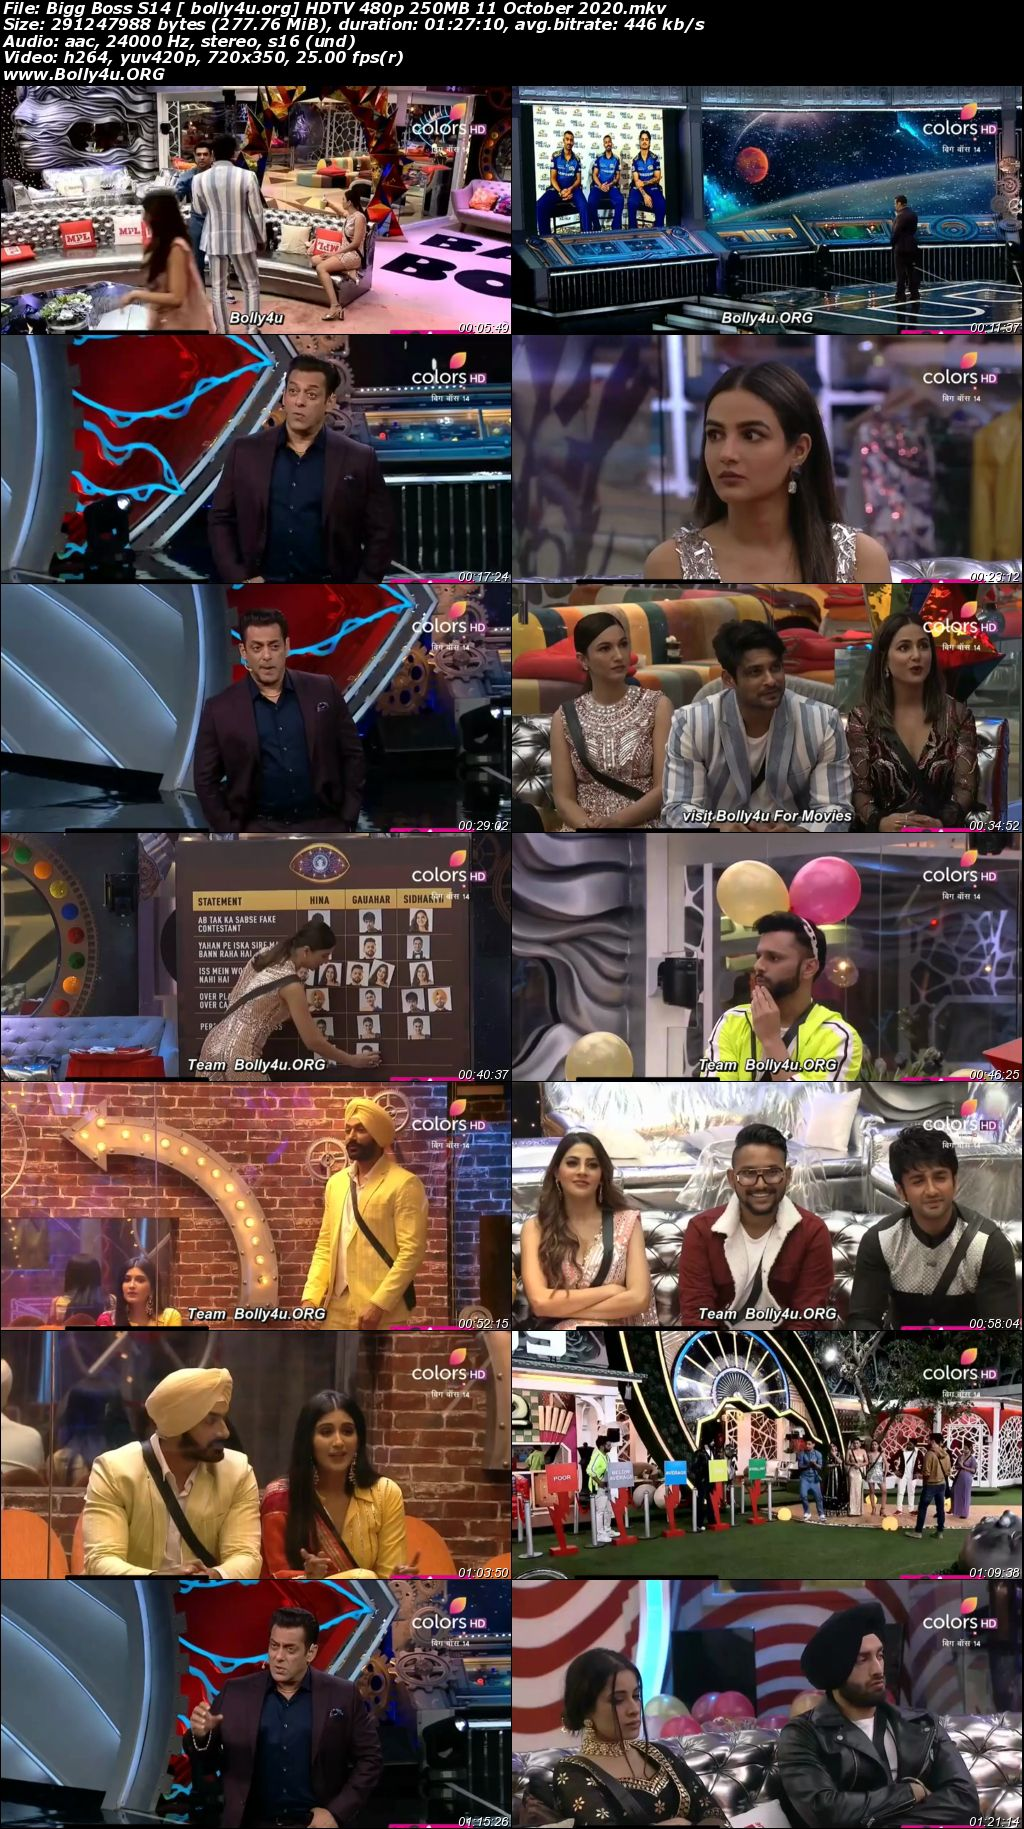 Bigg Boss S14 HDTV 480p 250MB 11 October 2020 Download